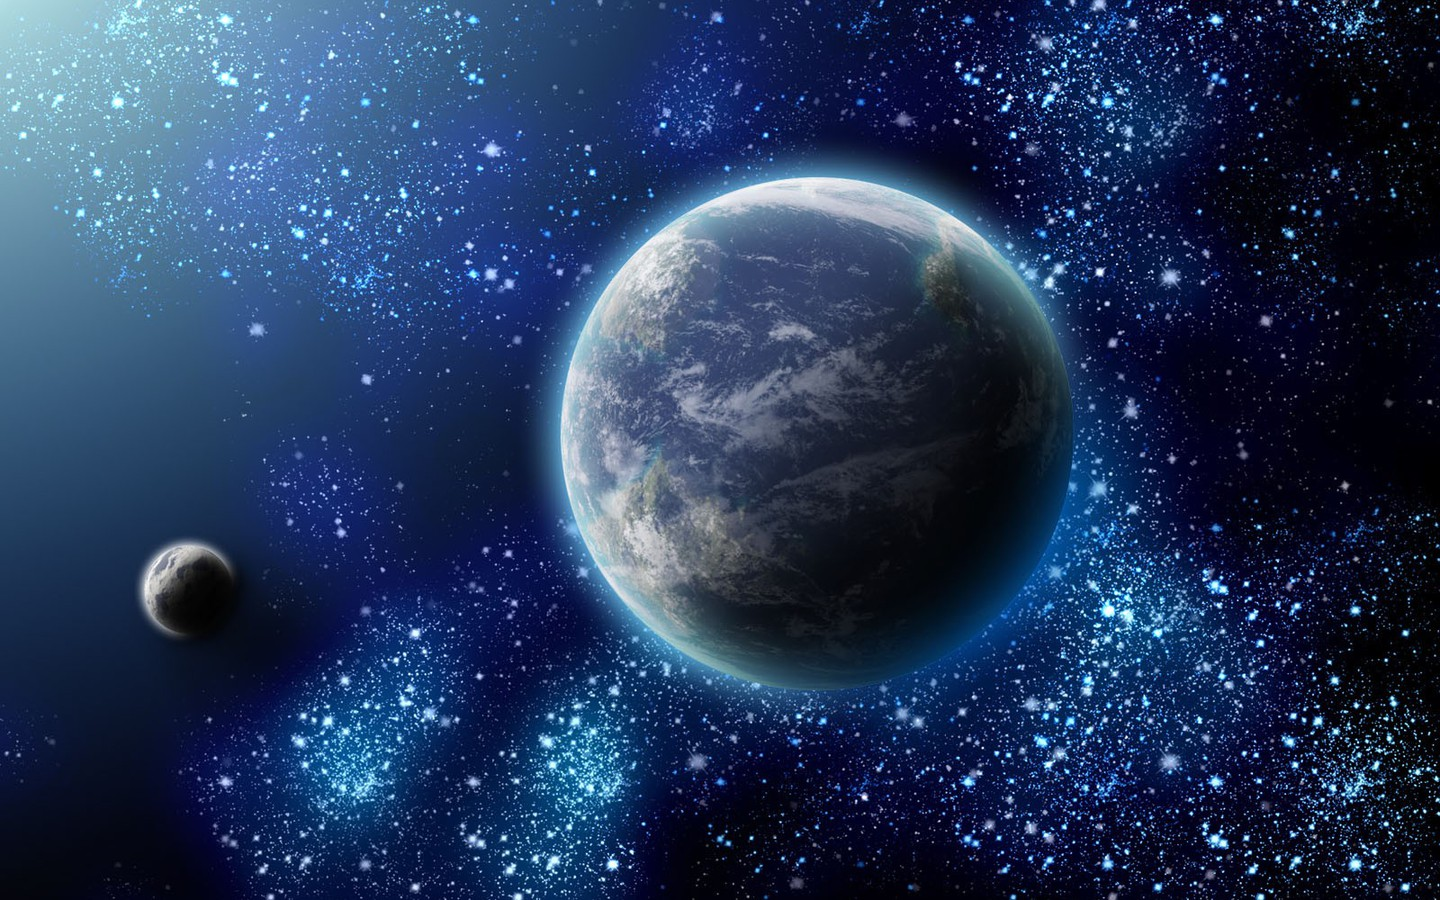 3d Space Background Wallpaper: 3D Space Wallpapers HD